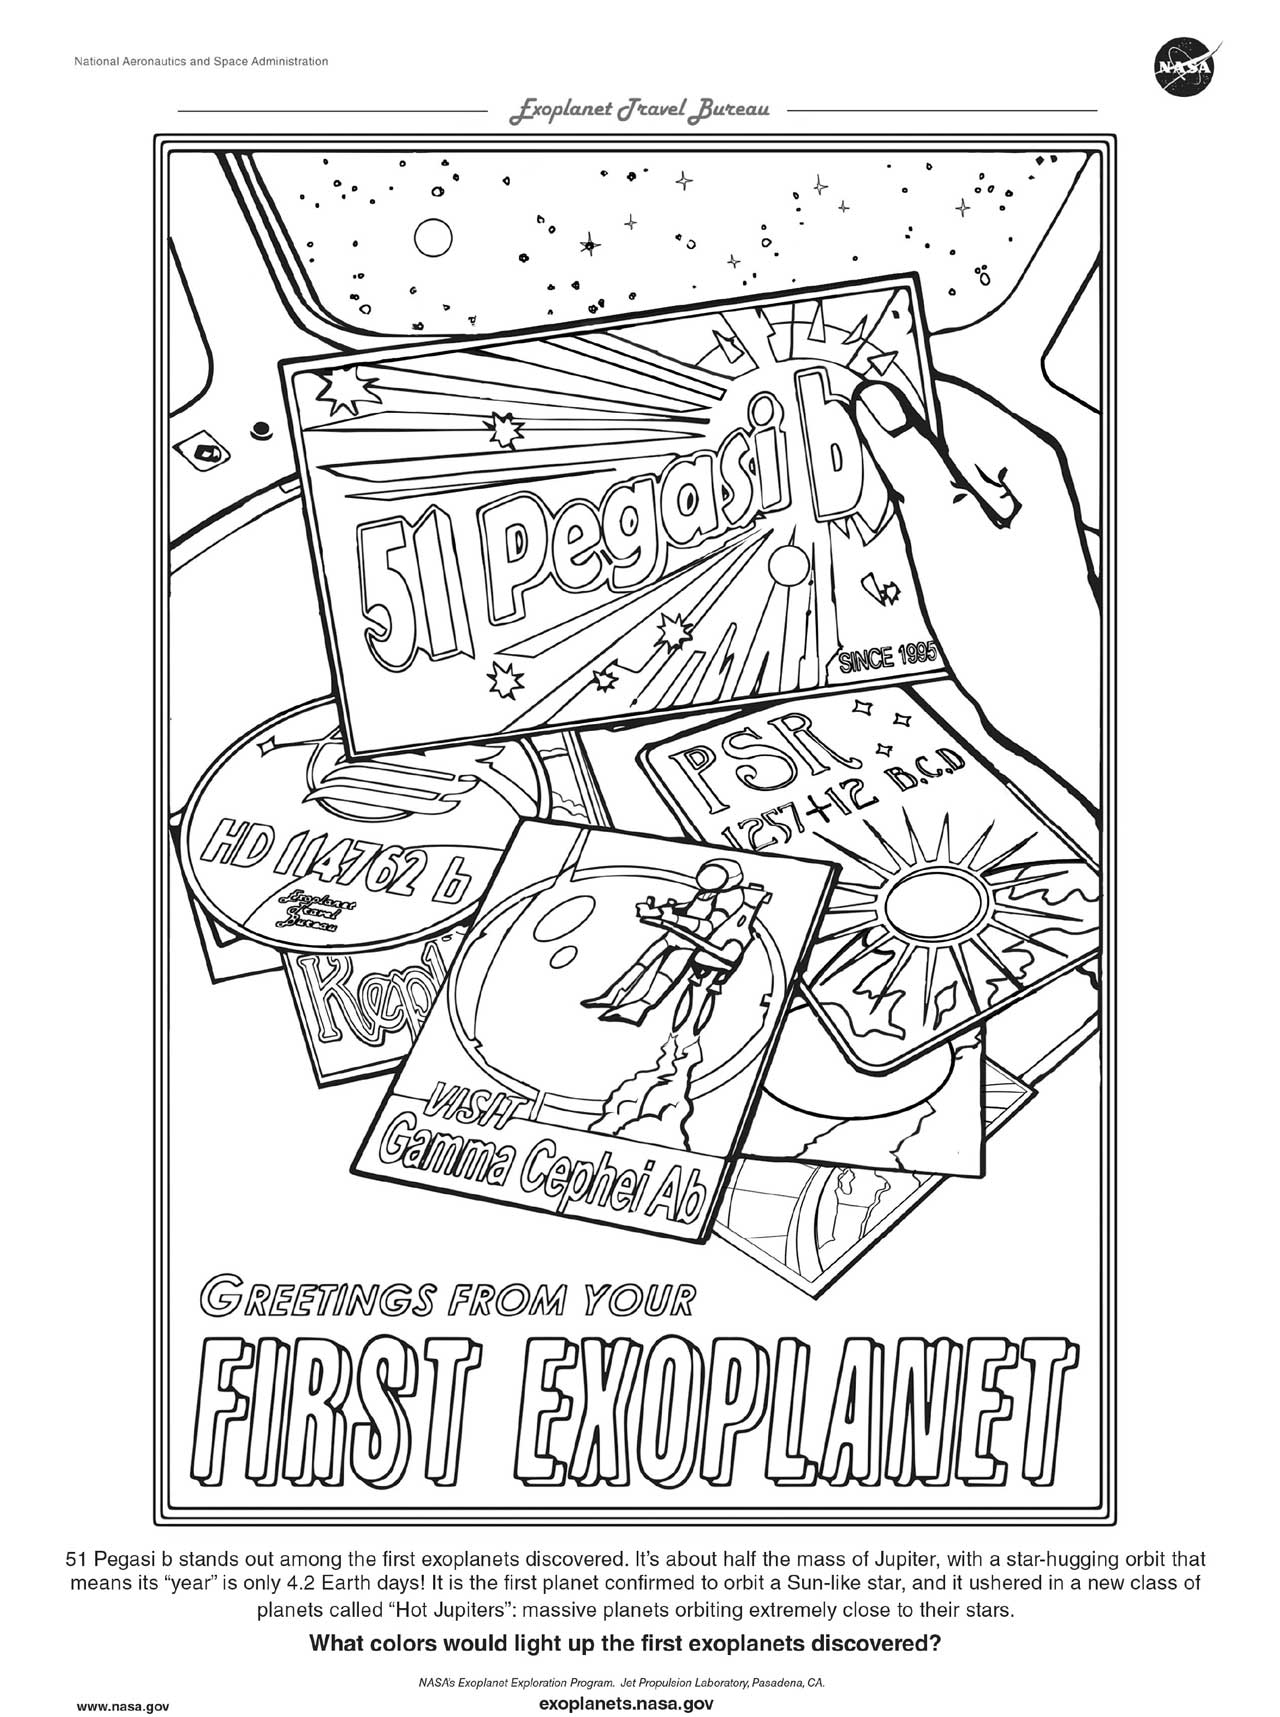 Add your touch to the coloring page for 51 Pegasi b based on our popular Exoplanet Travel Bureau poster that shows various post cards for first exoplanets discovered.